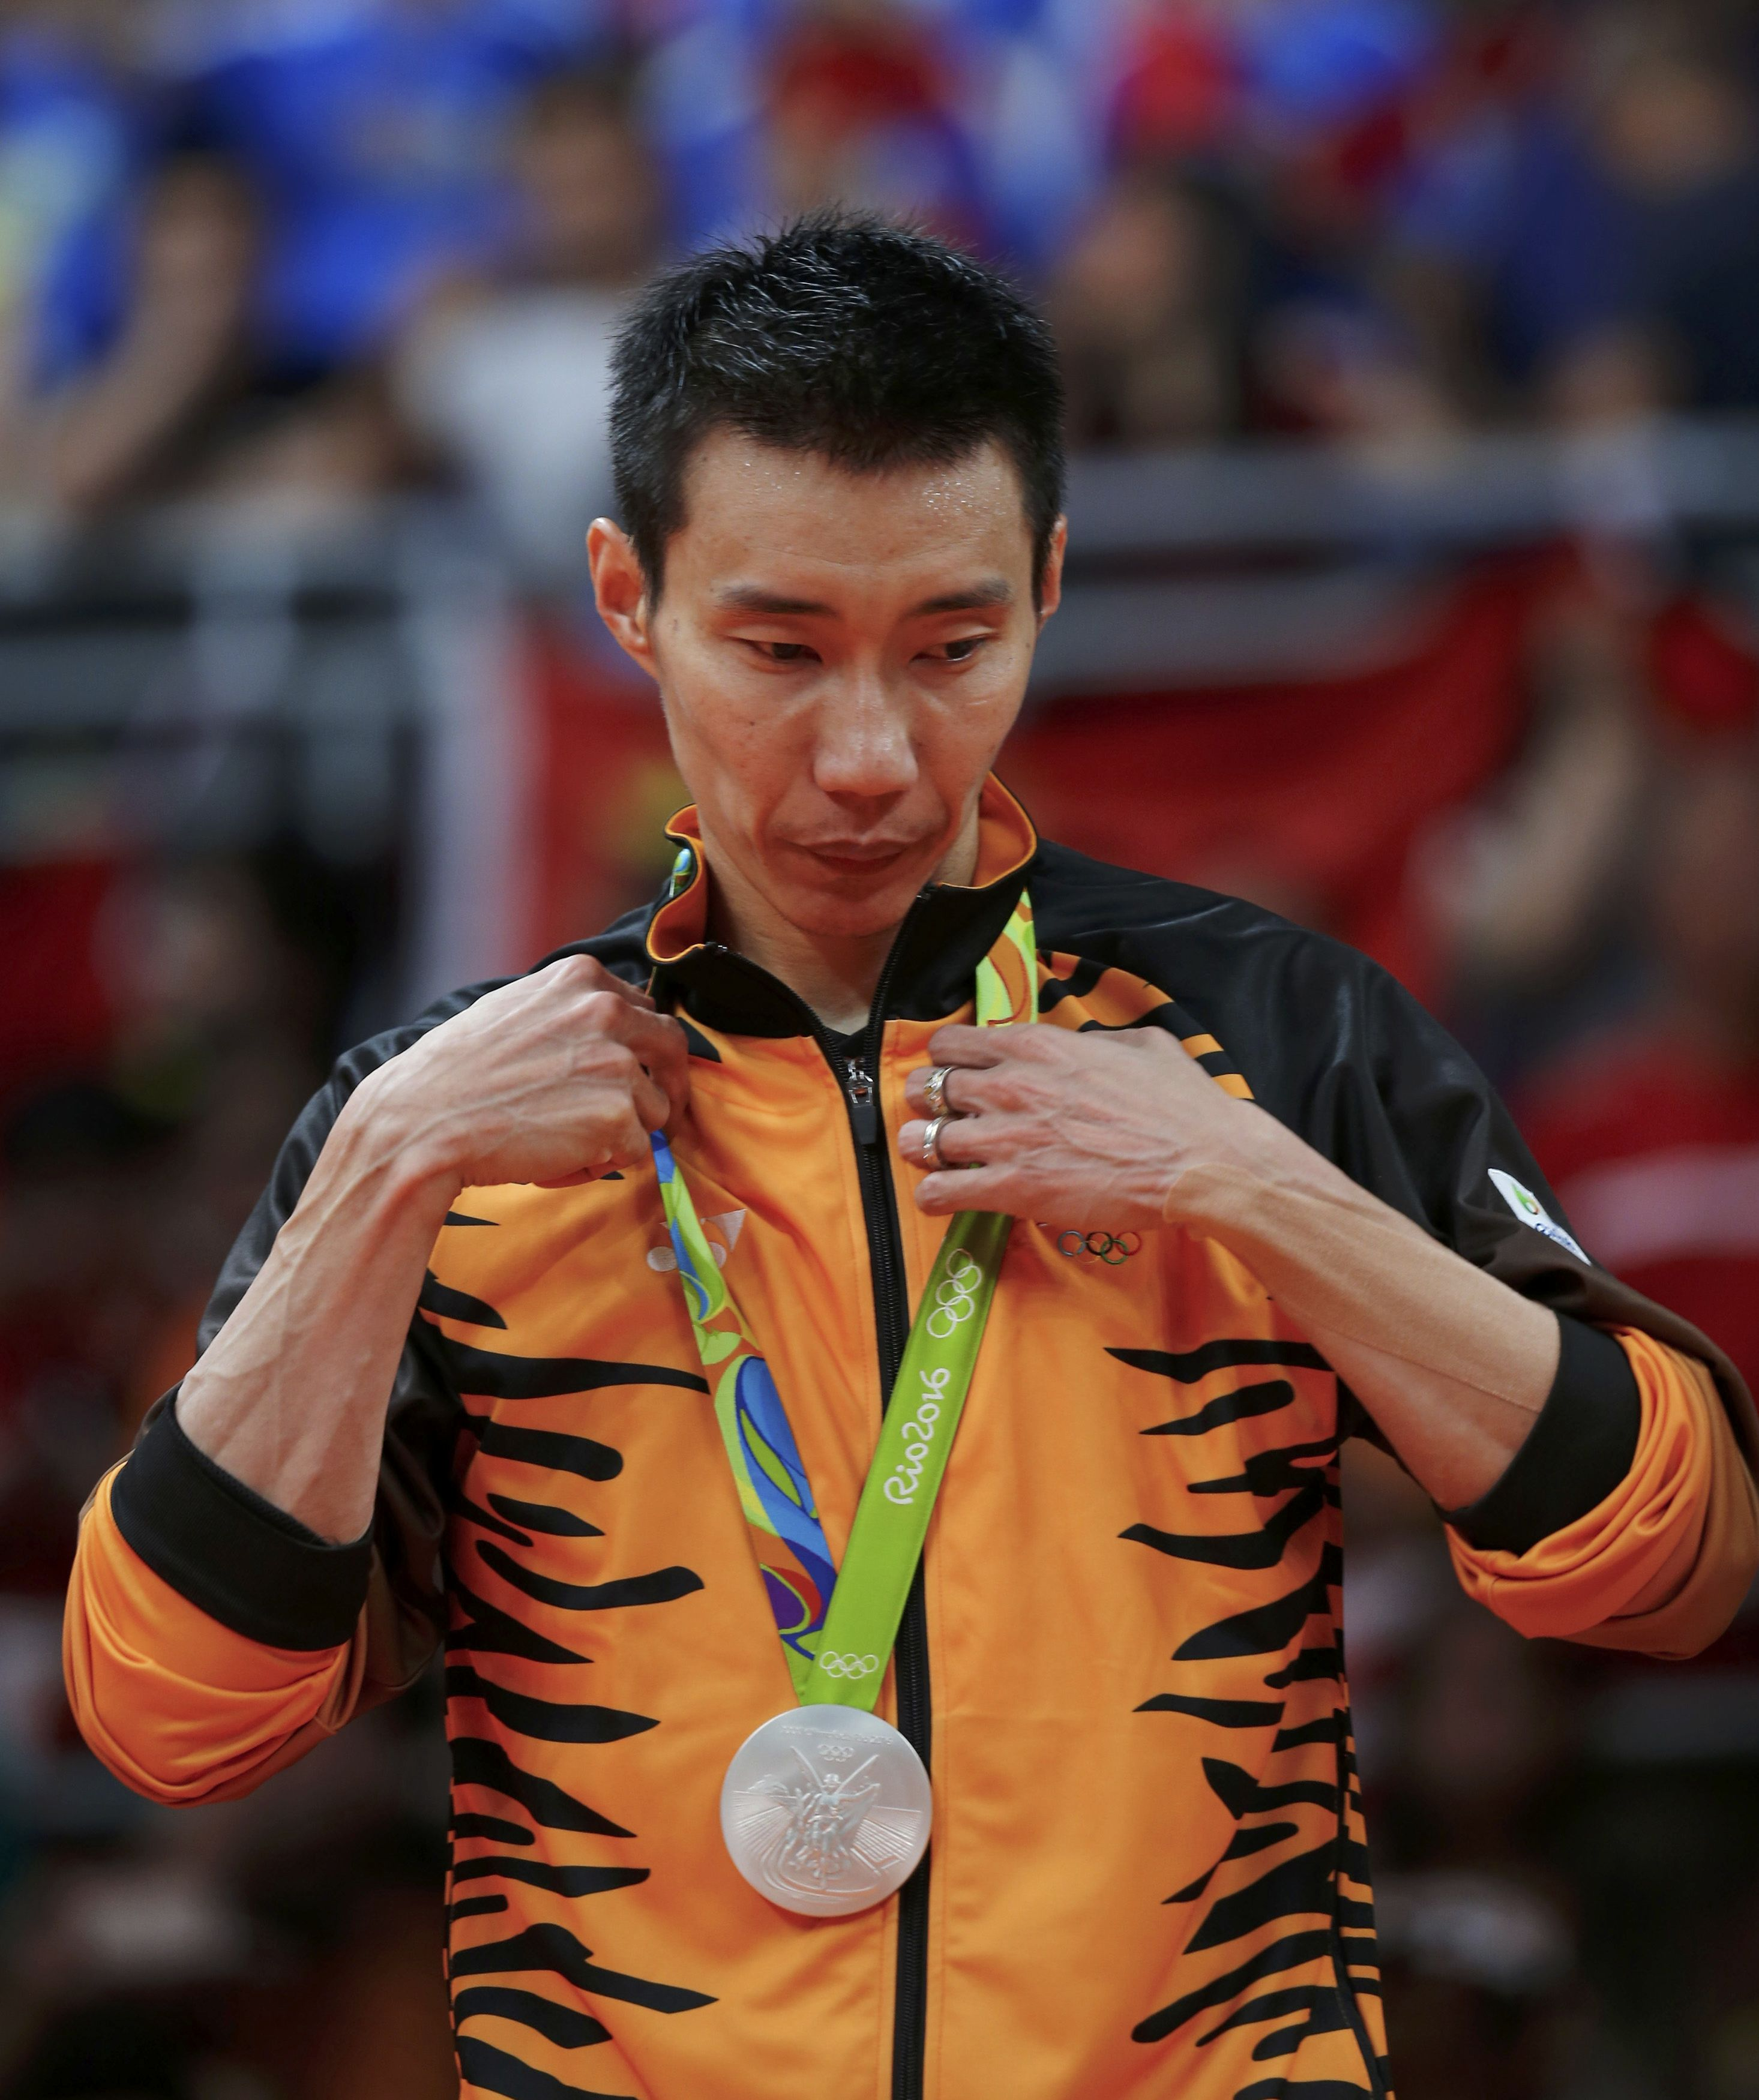 Dato Lee Chong Wei Wins Silver Medal For Malaysia After Losing